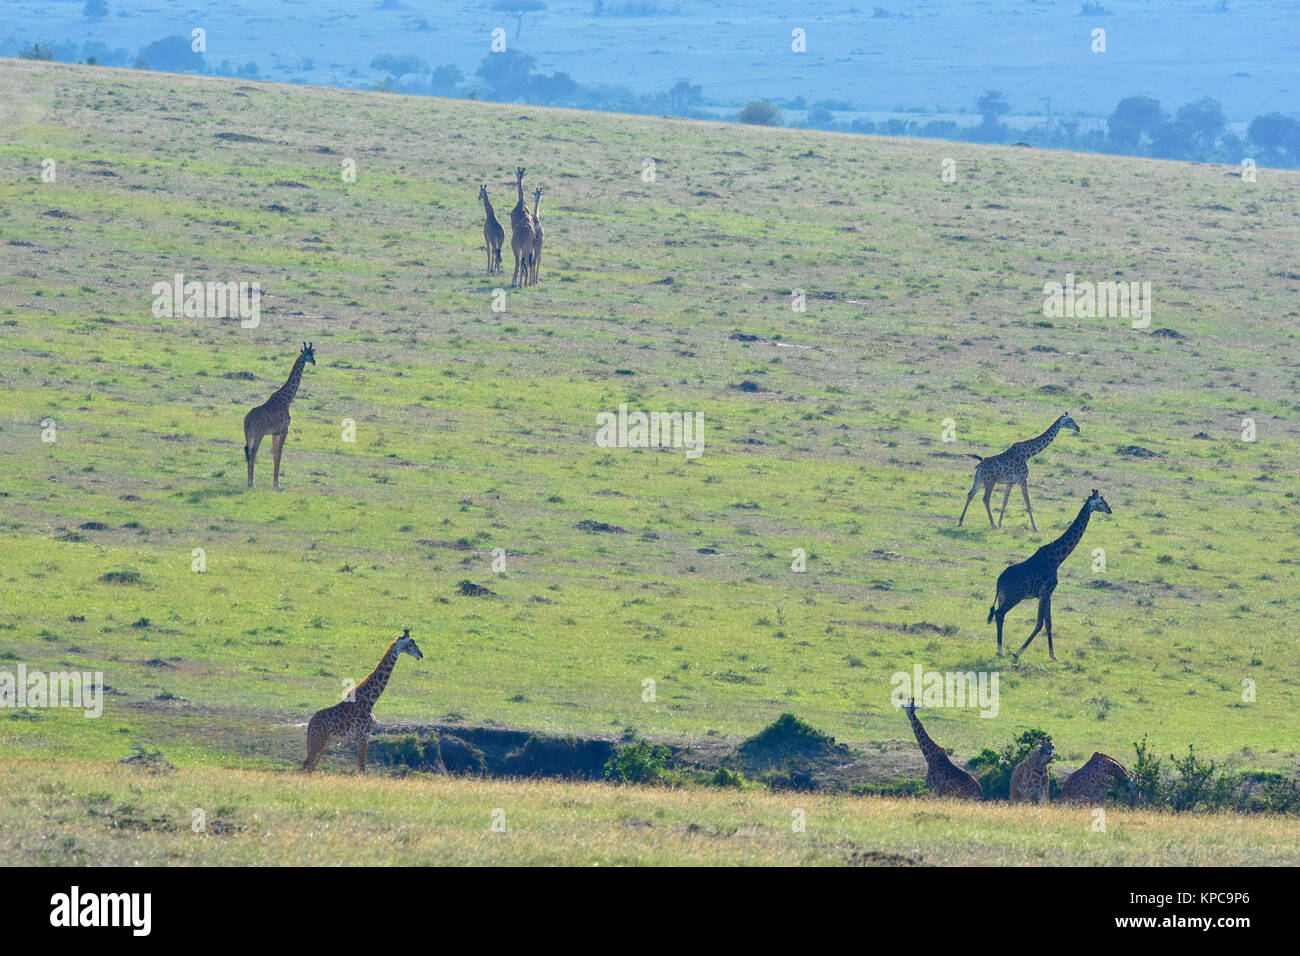 Kenya is a prime tourist destination in East Africa. Famous for wildlife and natural beauty. Giraffe family on grass Stock Photo